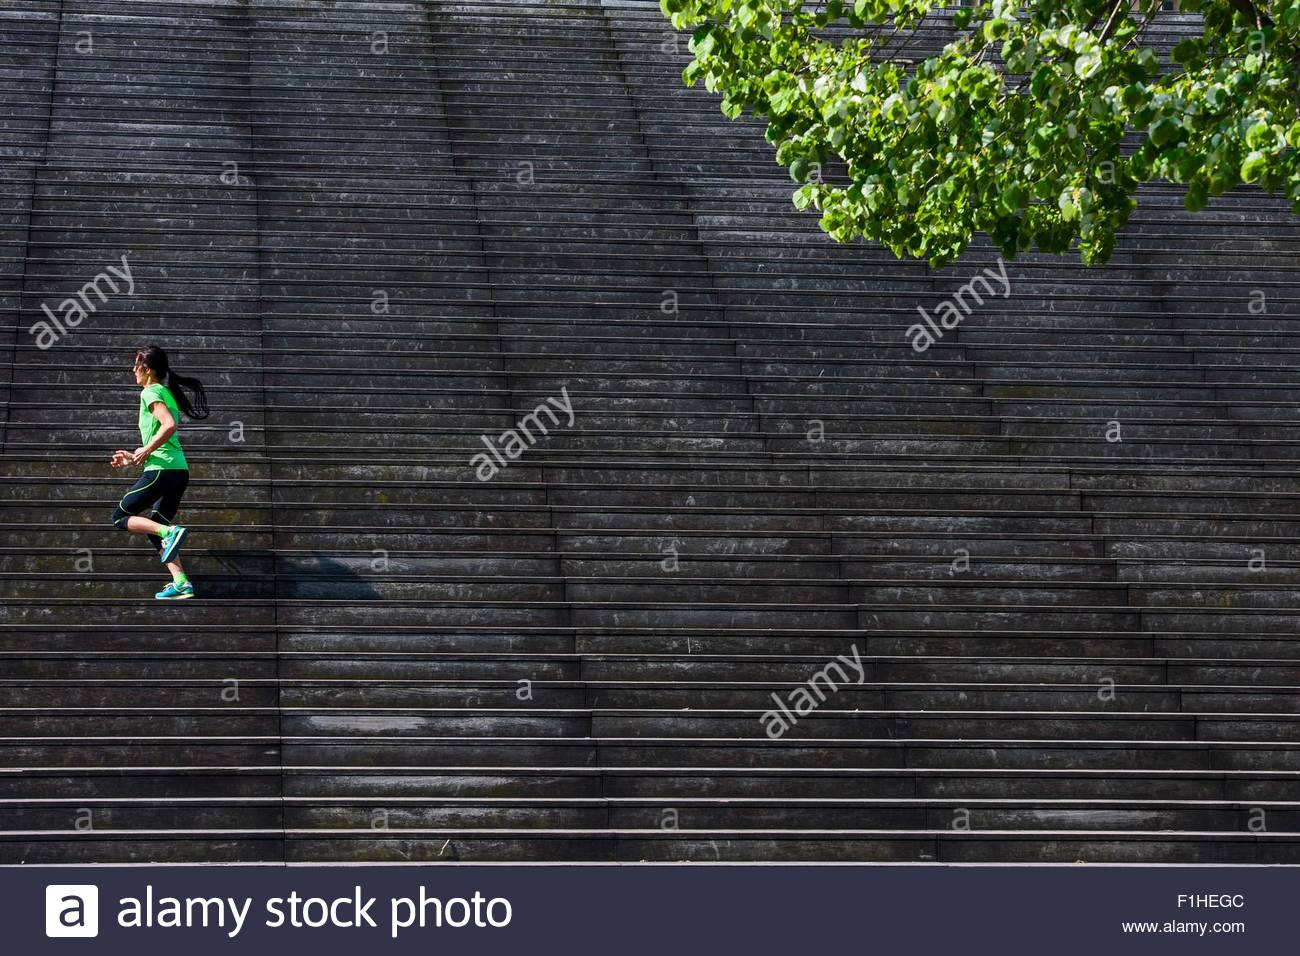 Female runner running diagonally up wooden stairway - Stock Image